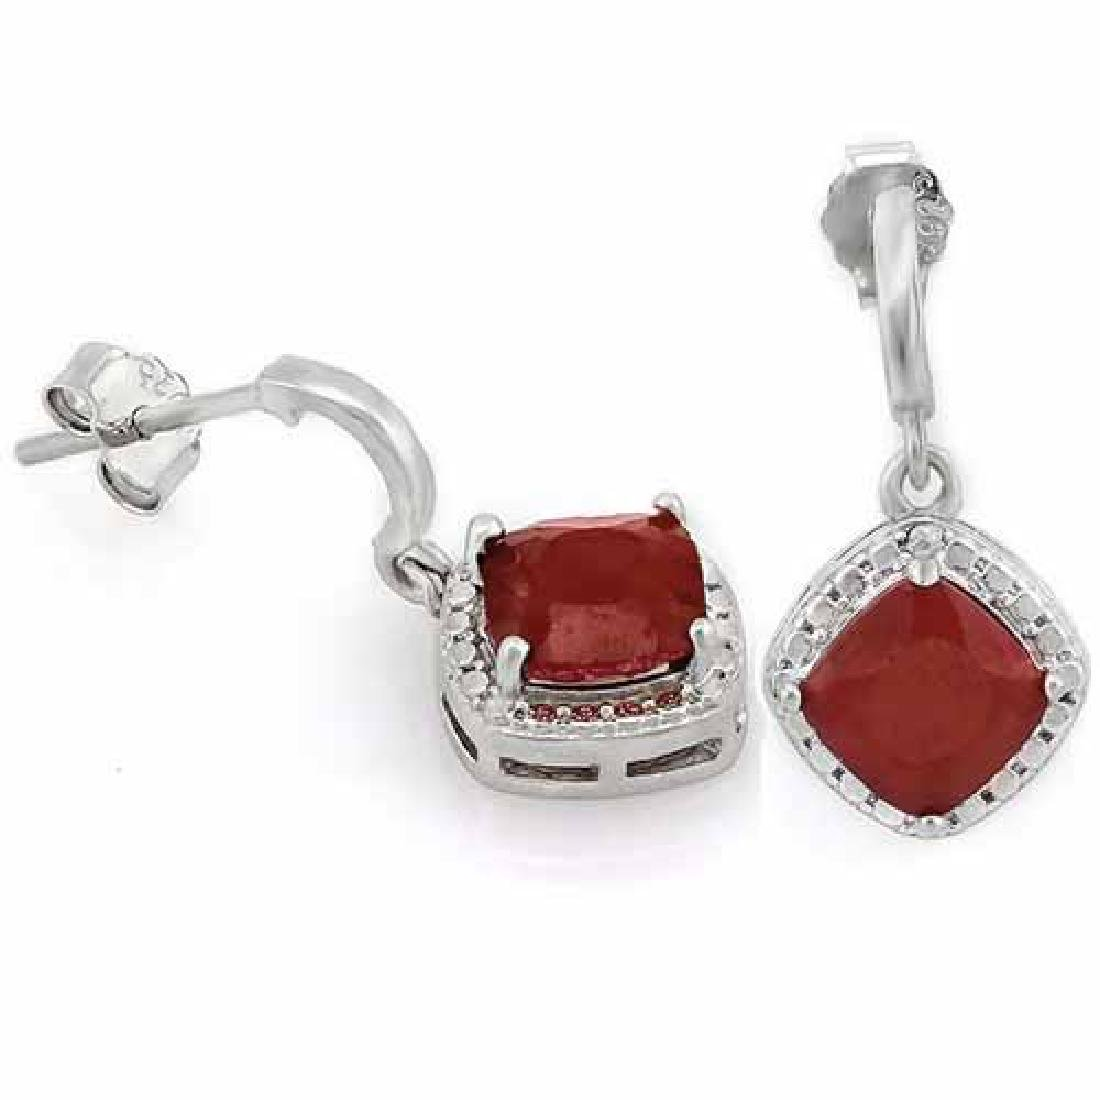 2 4/5 CARAT GENUINE RUBY & DIAMOND 925 STERLING SILVER